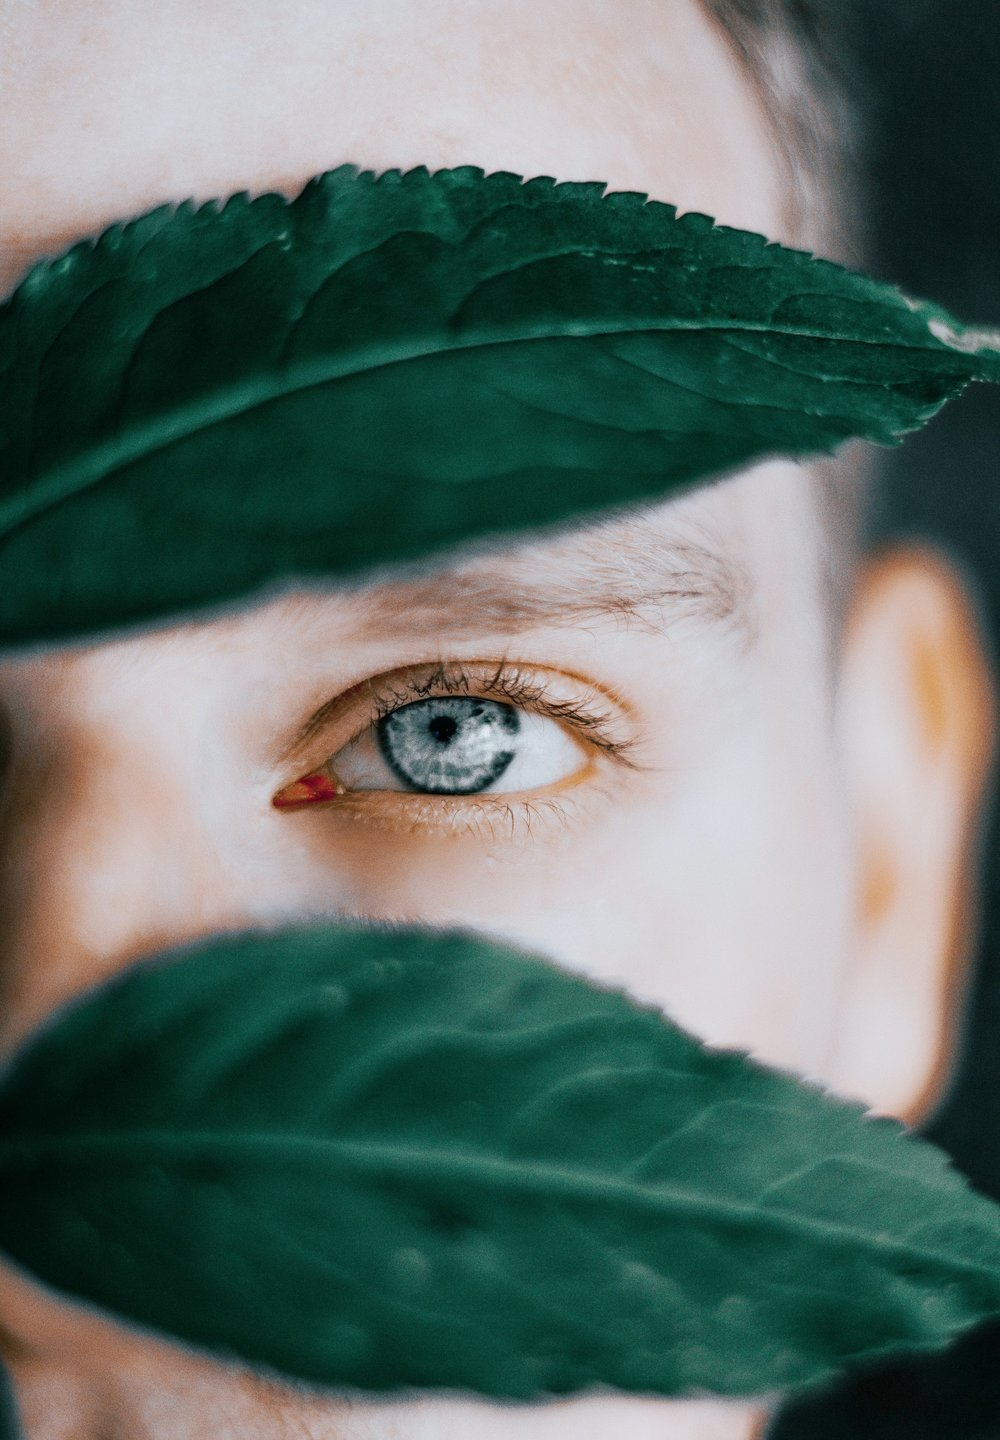 A person peers out from behind green leaves